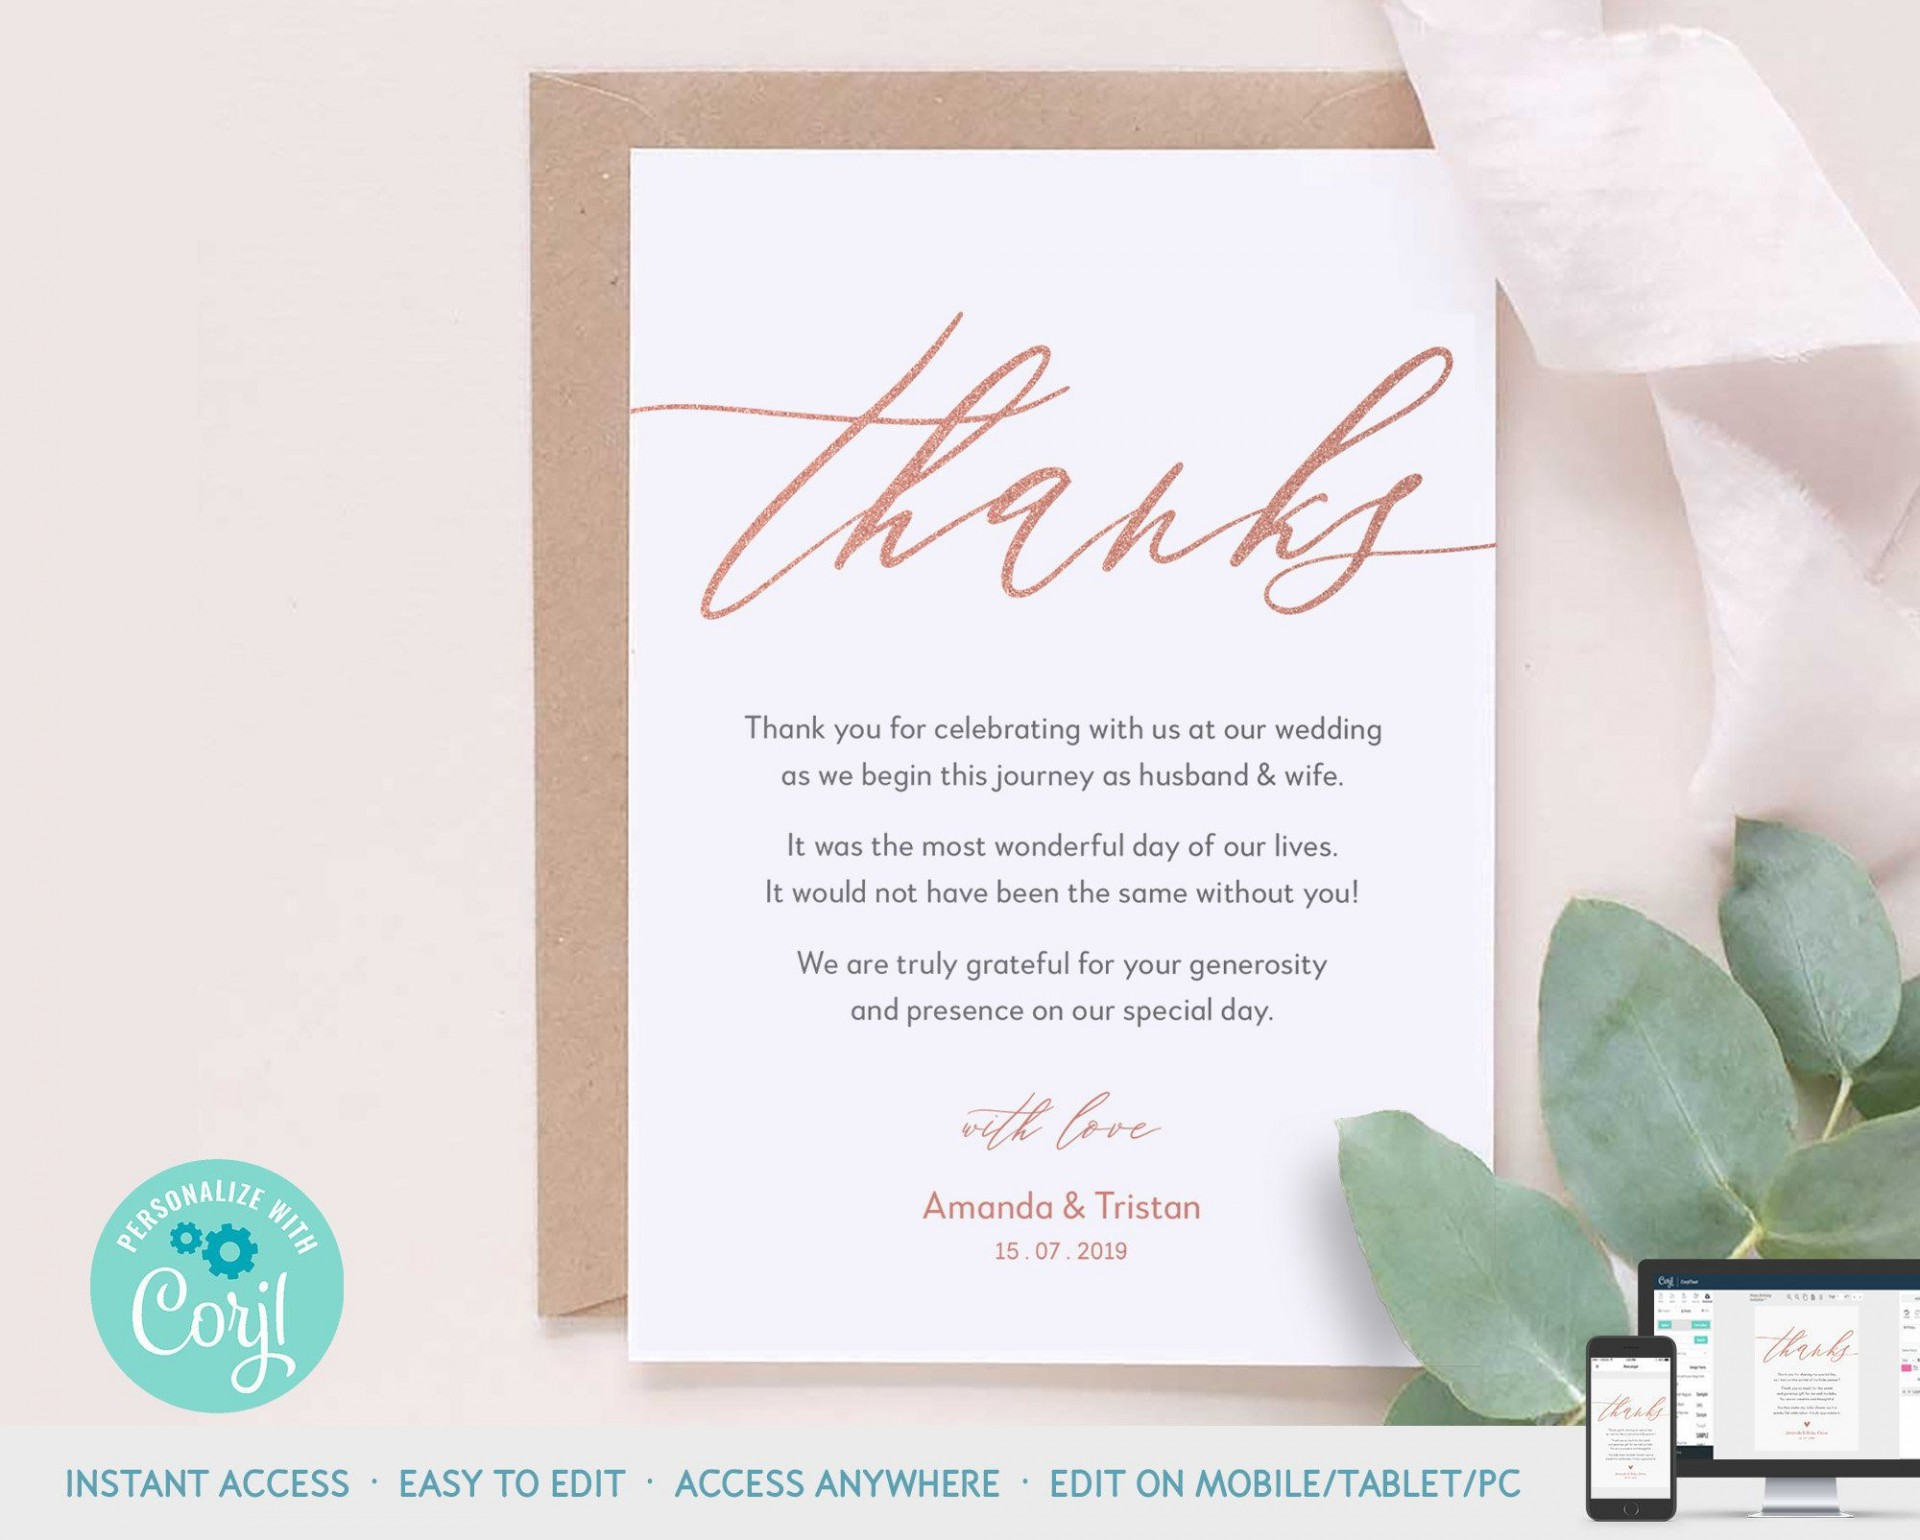 005 Wonderful Thank You Note Template Wedding Shower Concept  Bridal Card Sample Wording1920